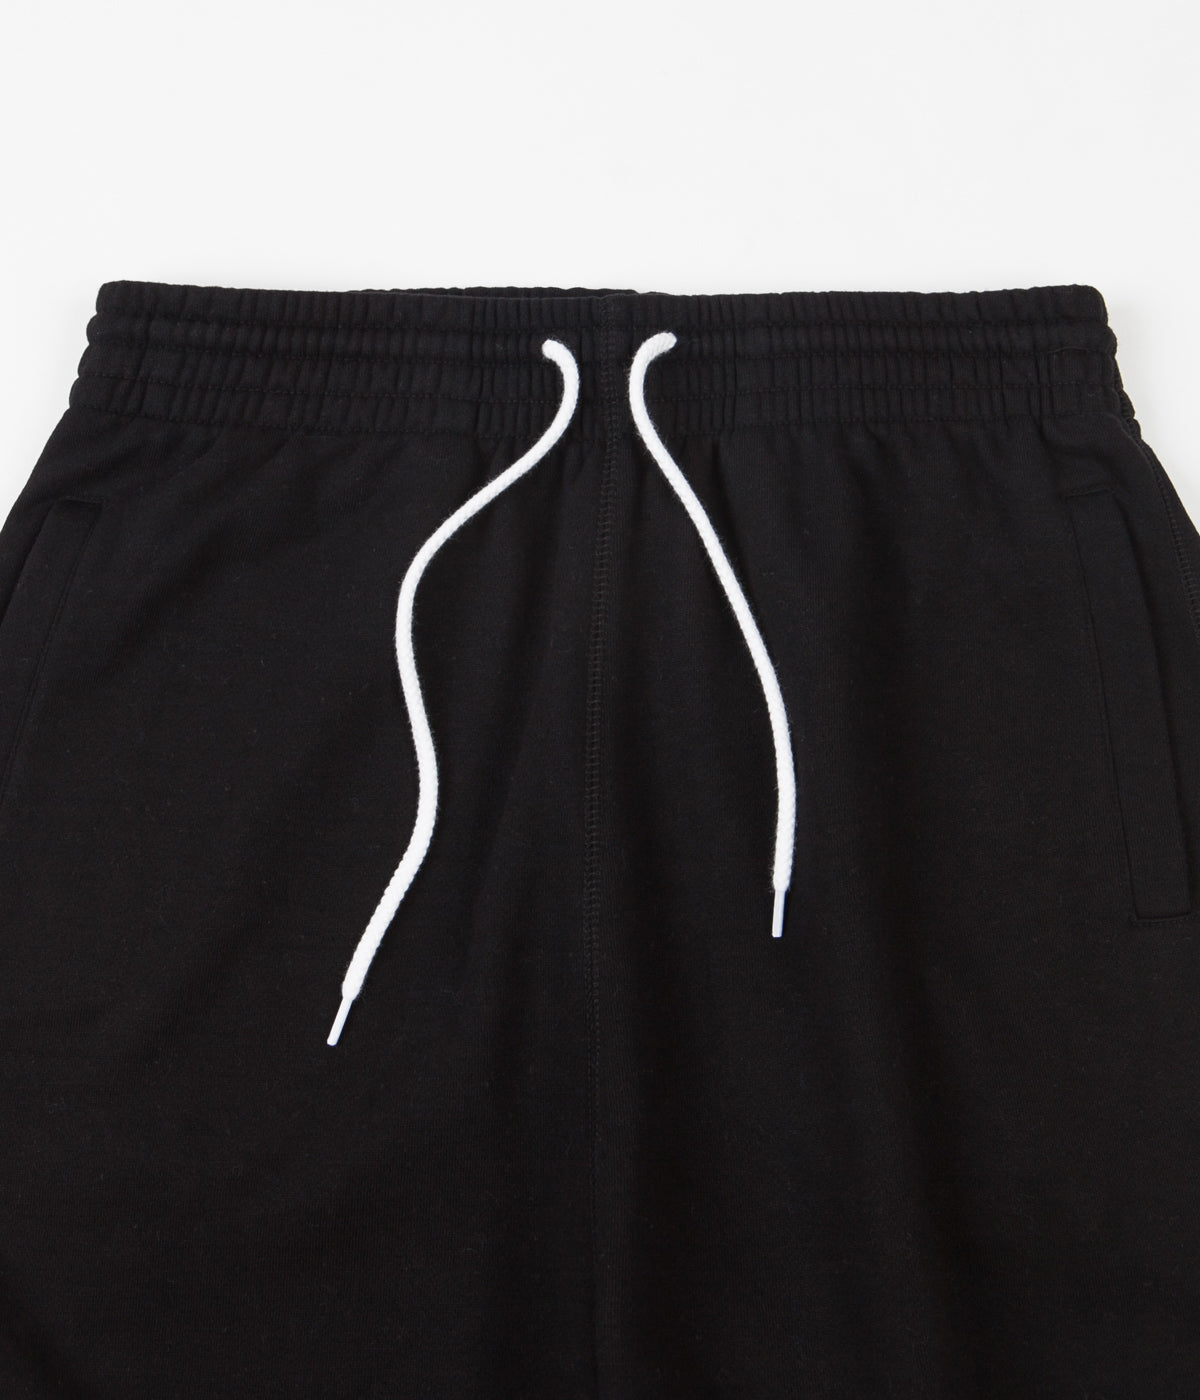 Polar Default Sweatshorts - Black